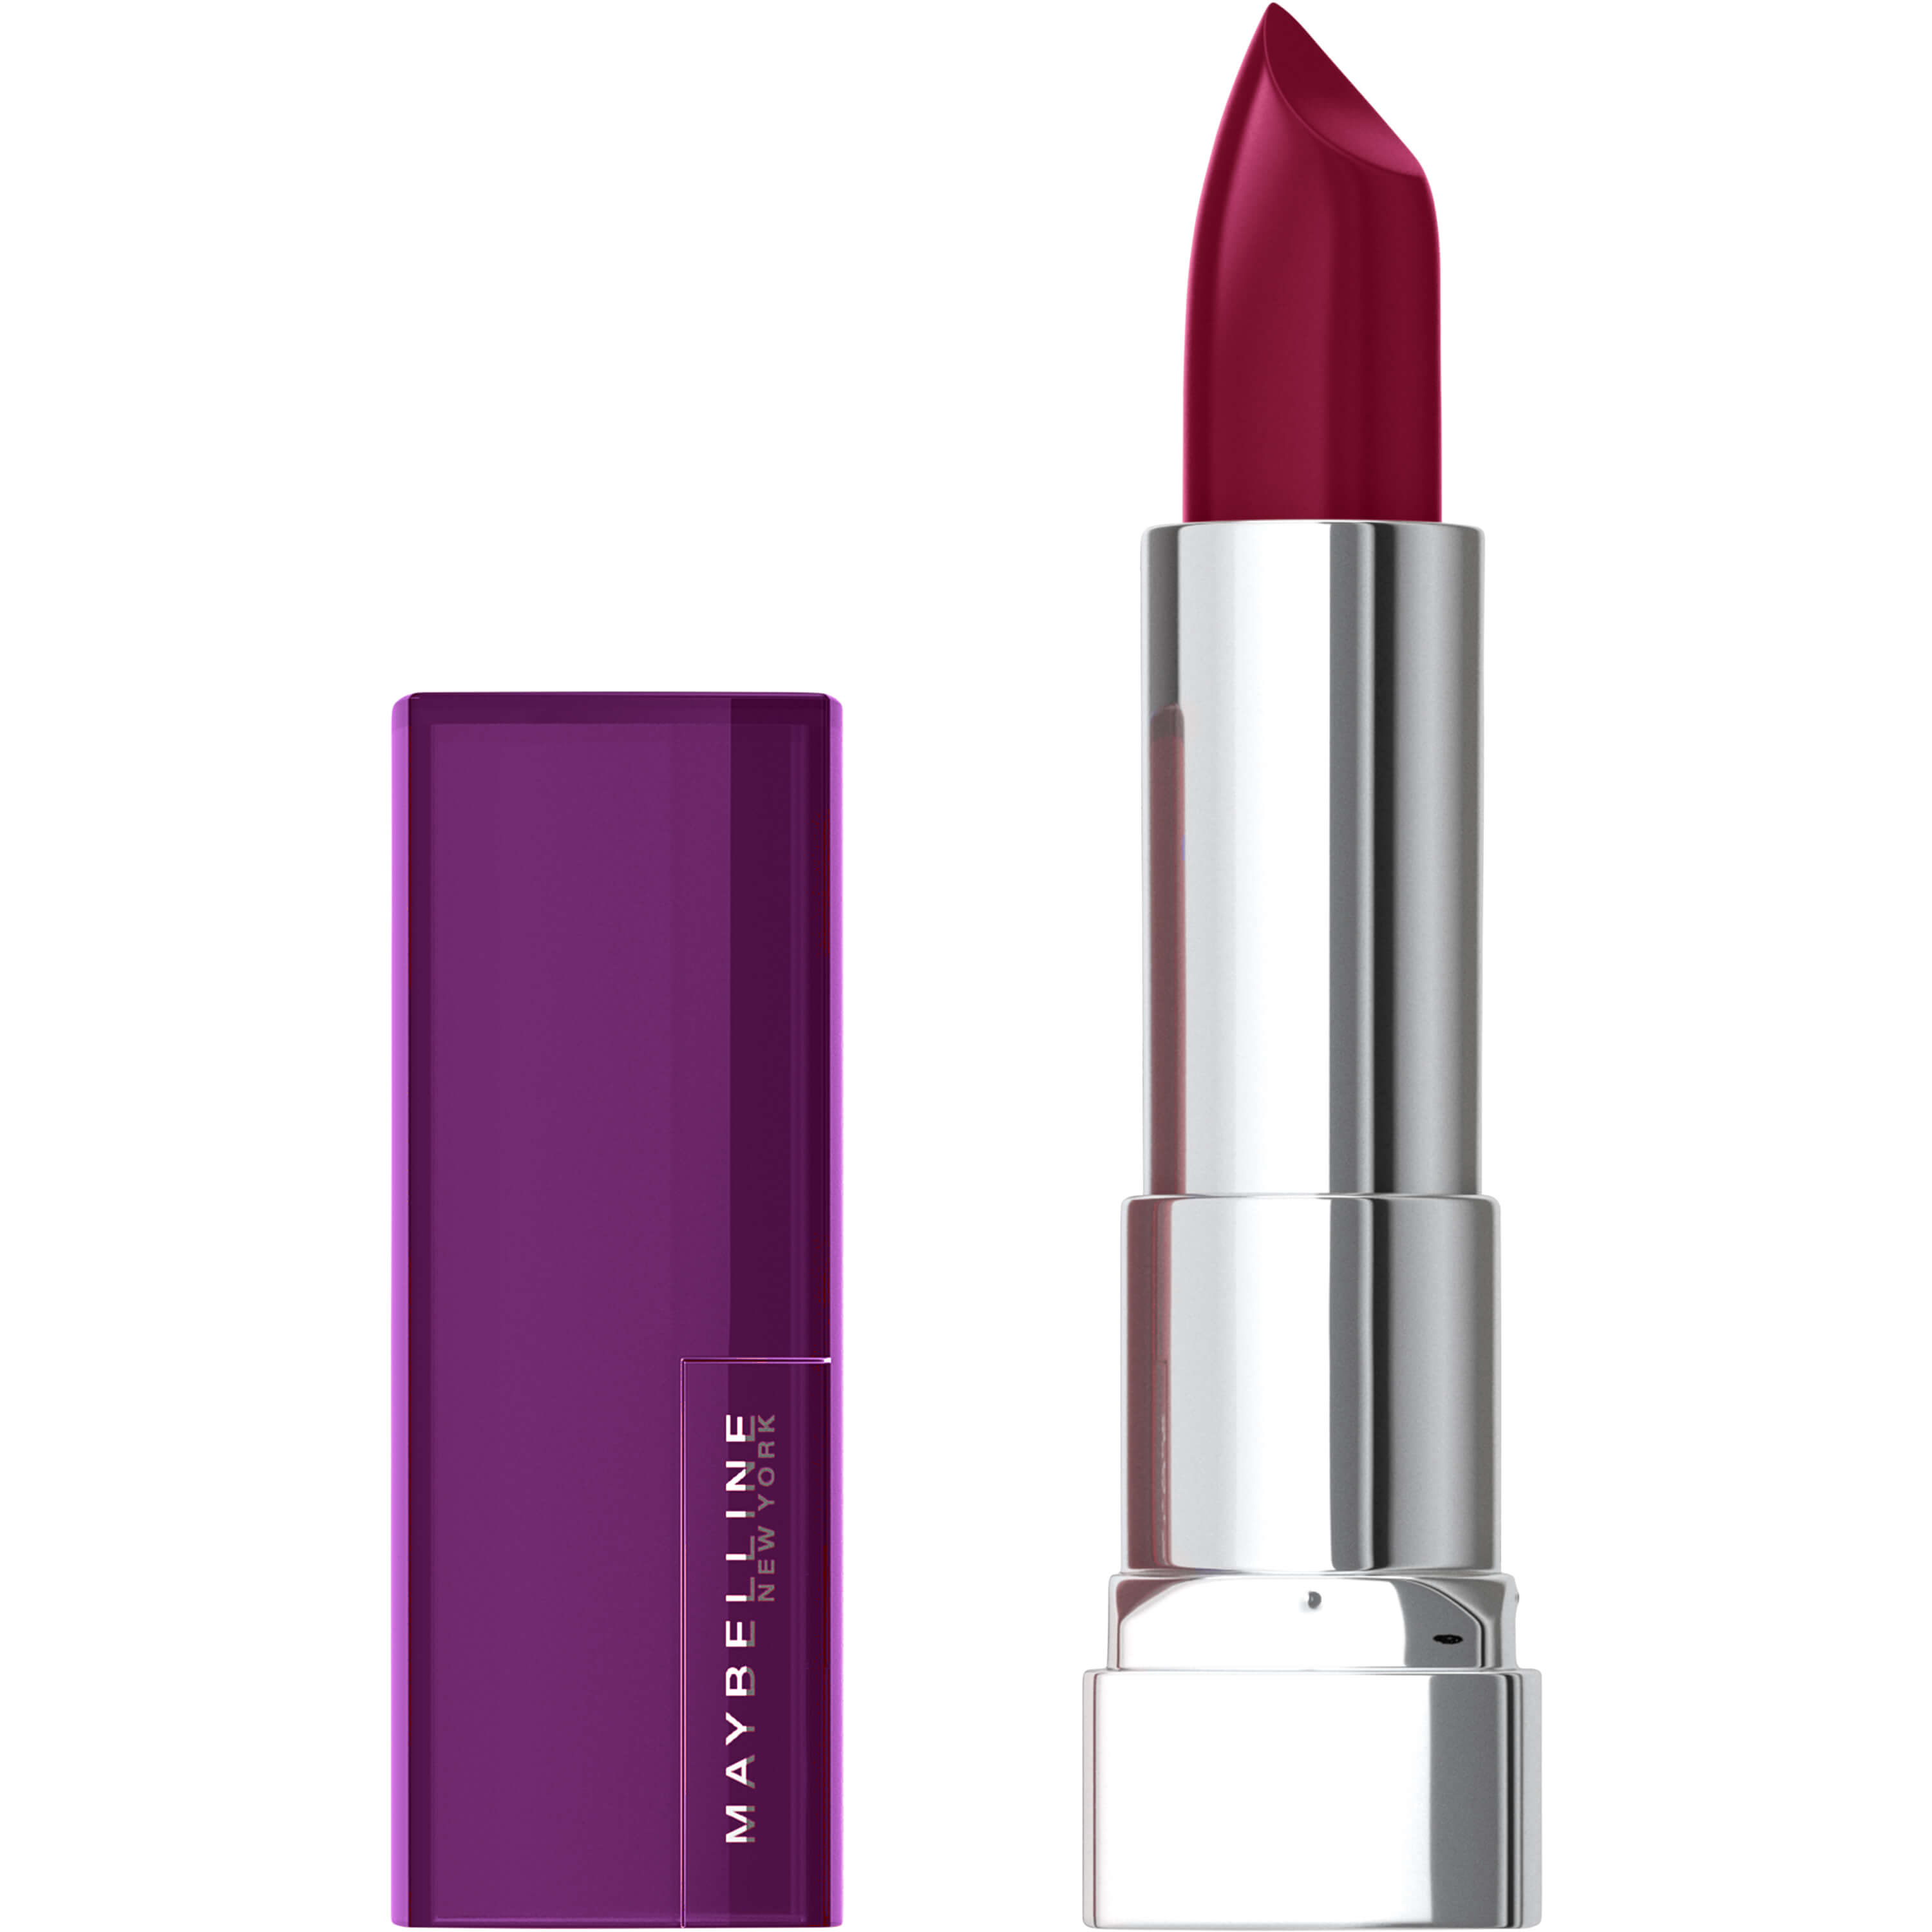 Maybelline Color Sensational Lipstick Plum Rule 411 4.4g